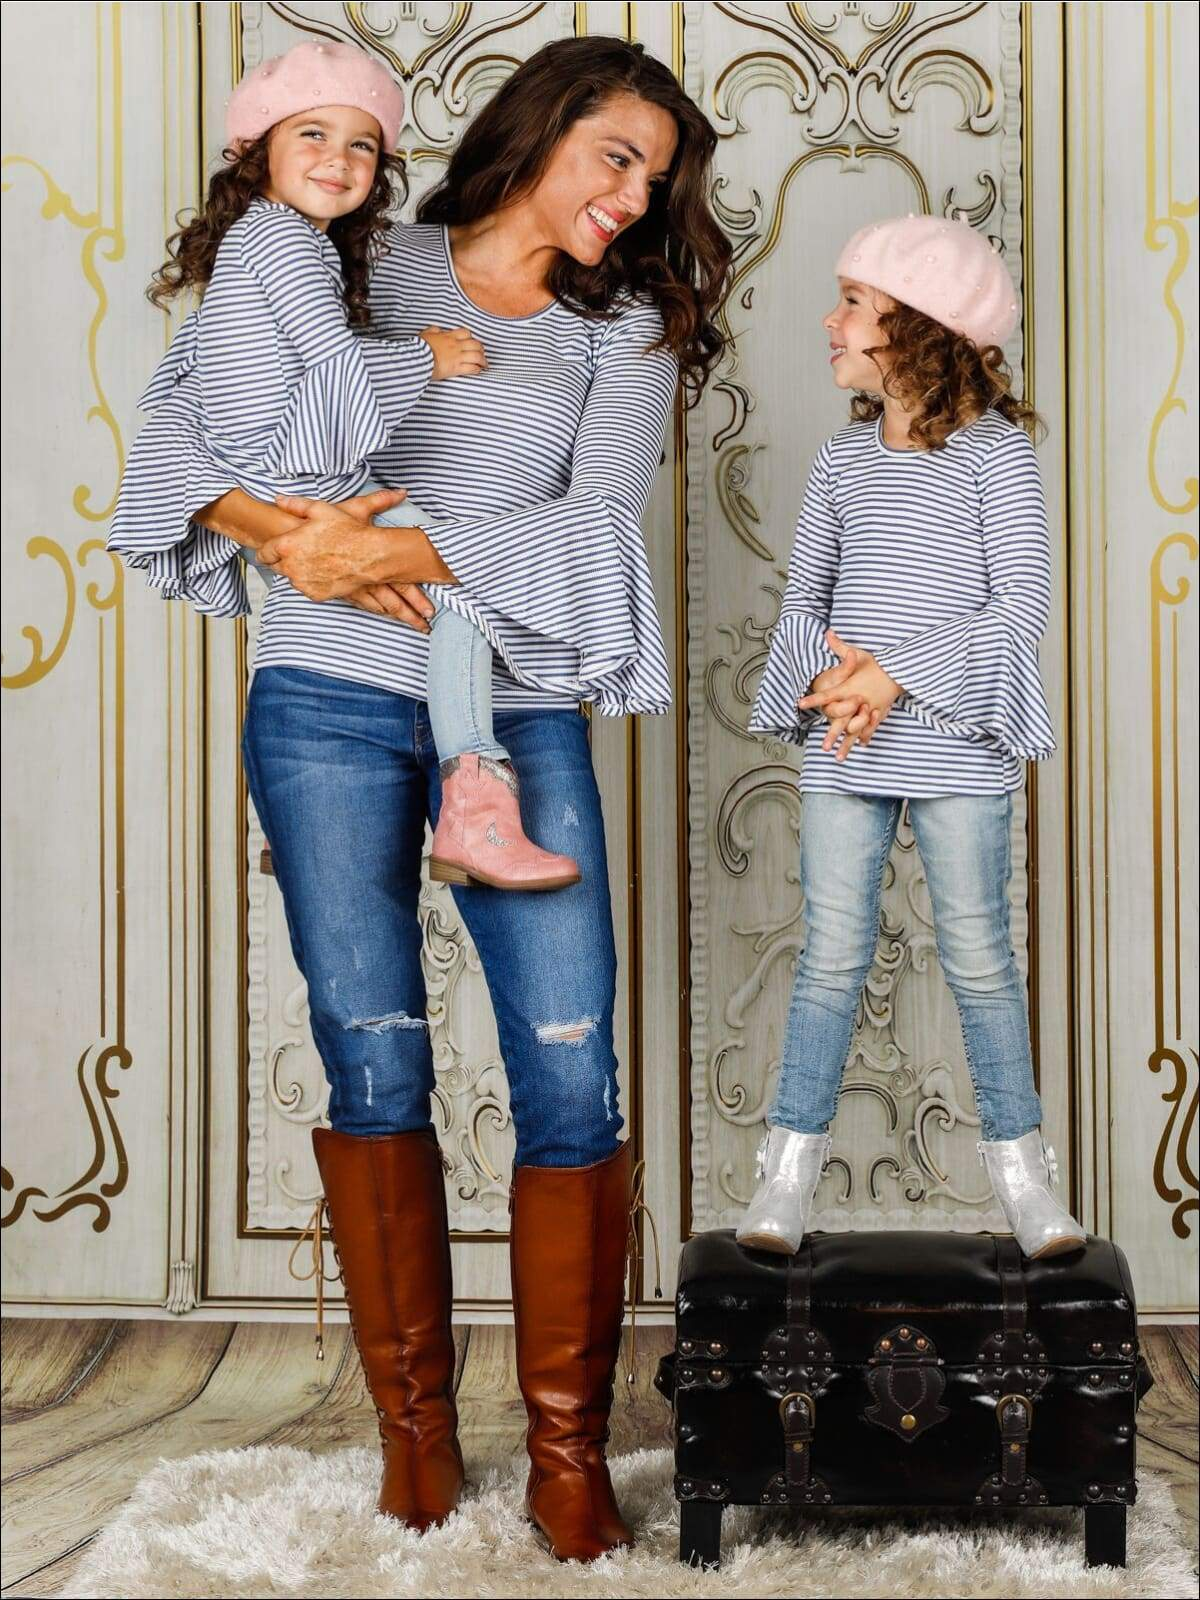 French girl style matching mommy and me outfits with striped shirt